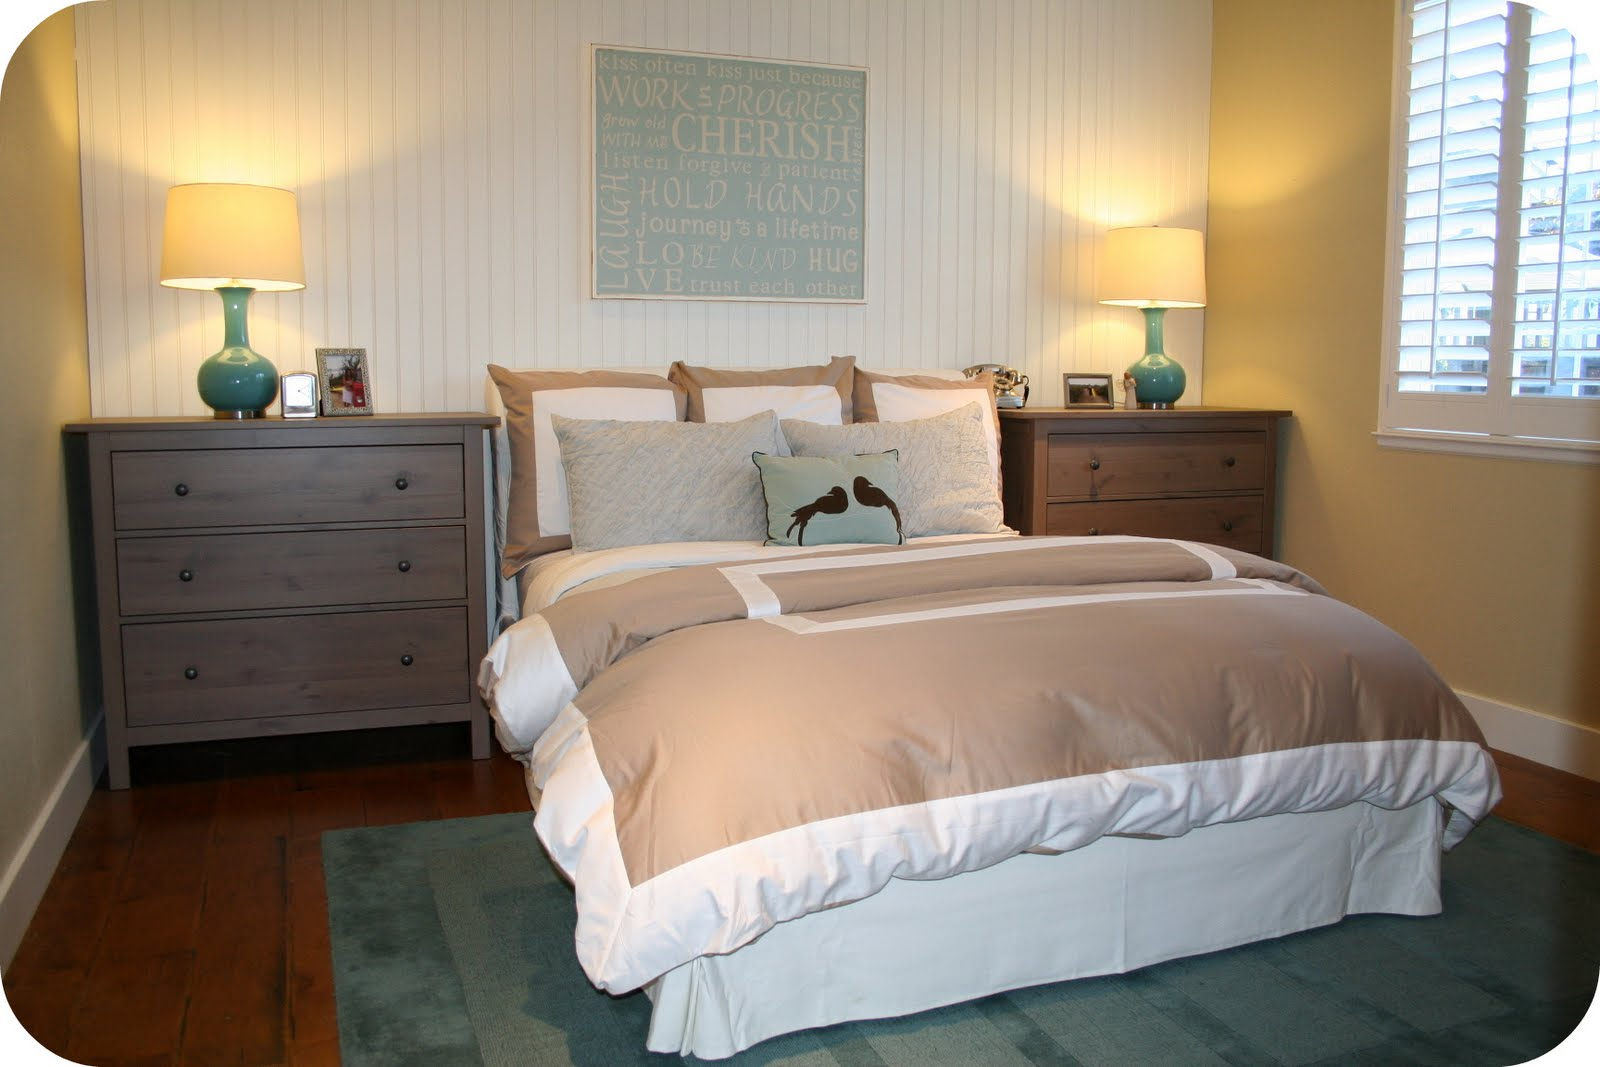 April Kennedy My Life My Style Small Spaces Master Bedroom Fresh New Look